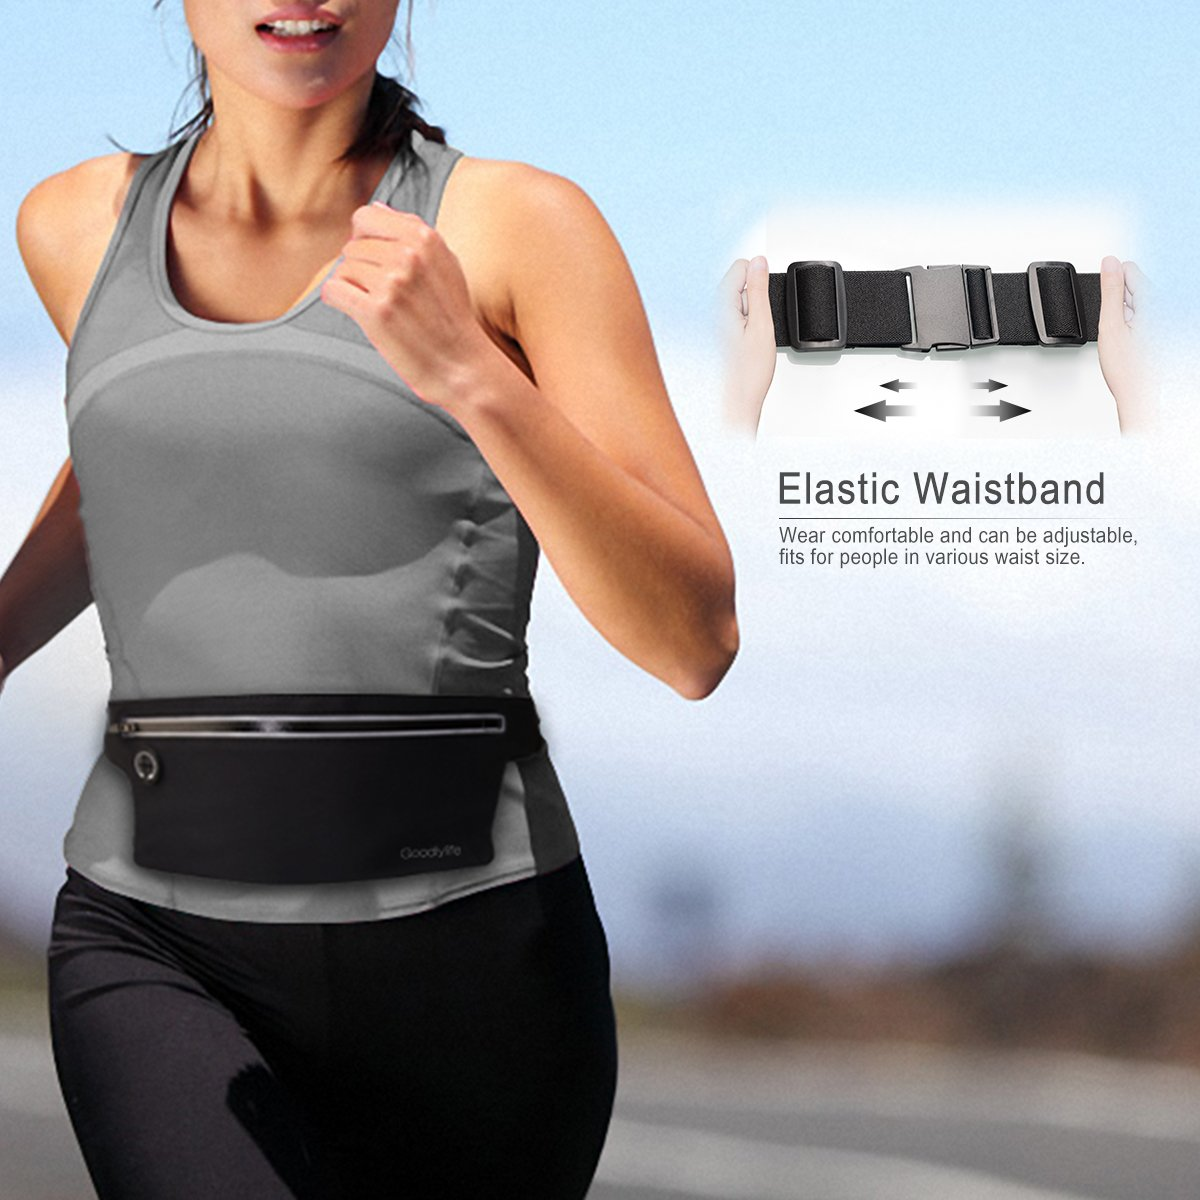 Workmanship In New Fashion Adjustable Running Sport Gym Armbands Bag Case For Iphone 6 6plus 5s 5c 5 4s 4 Waterproof Jogging Mobile Phone Belt Cover Exquisite